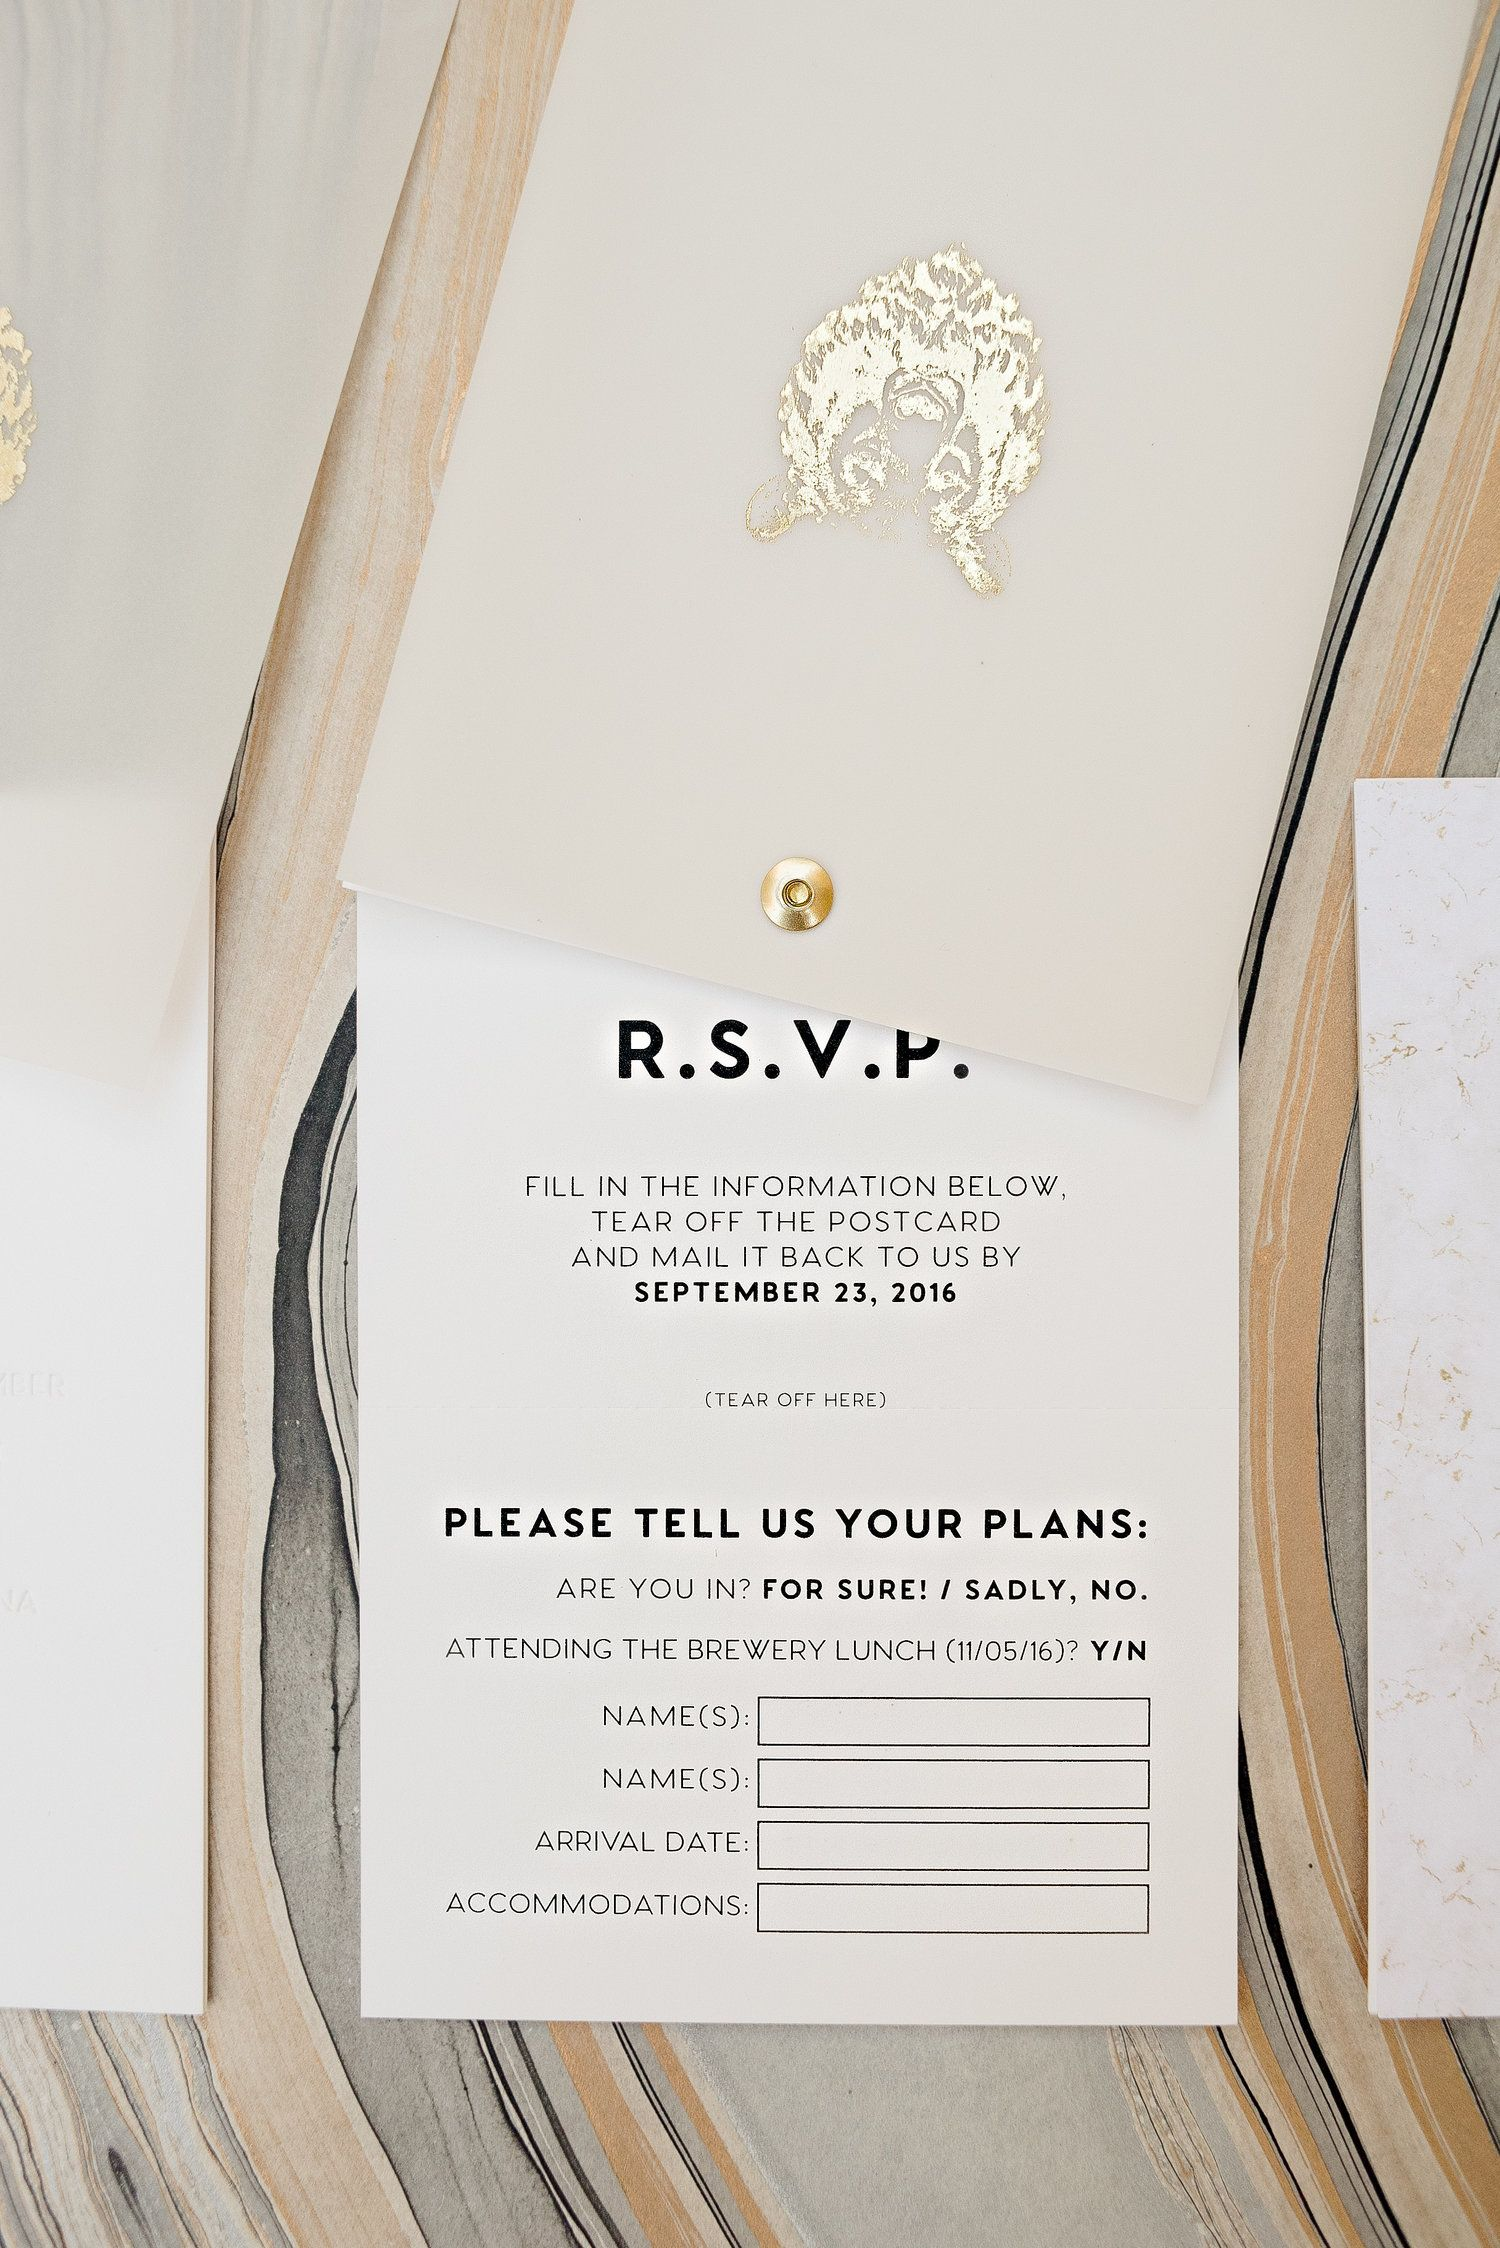 sample of wedding invitation letter%0A Twist rotating wedding invitation suite  gold foil logo on vellum cover   blind emboss